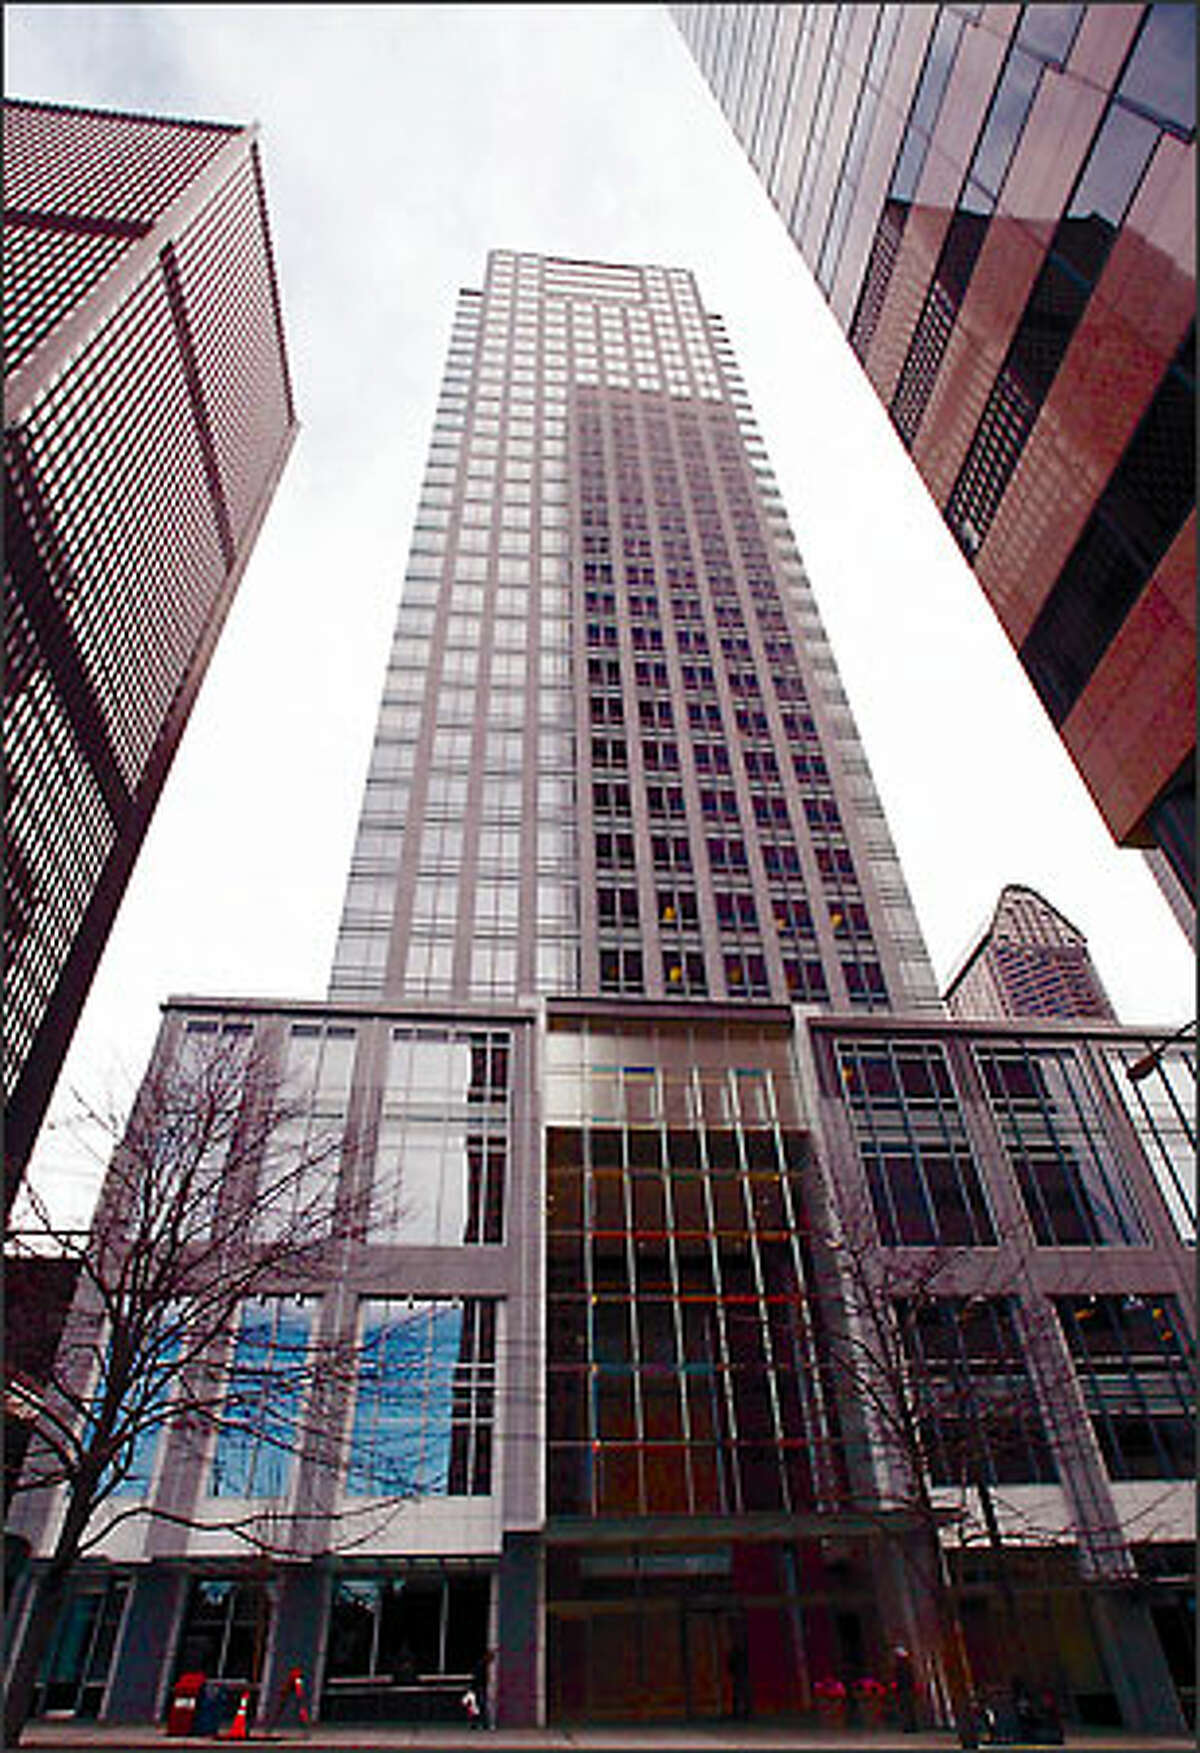 The IDX tower, Seattle's first skyscraper in more than a decade, appears taller than its 40 stories thanks to its take on an early skyscraper design called Art Moderne. This is the view from Third Avenue.